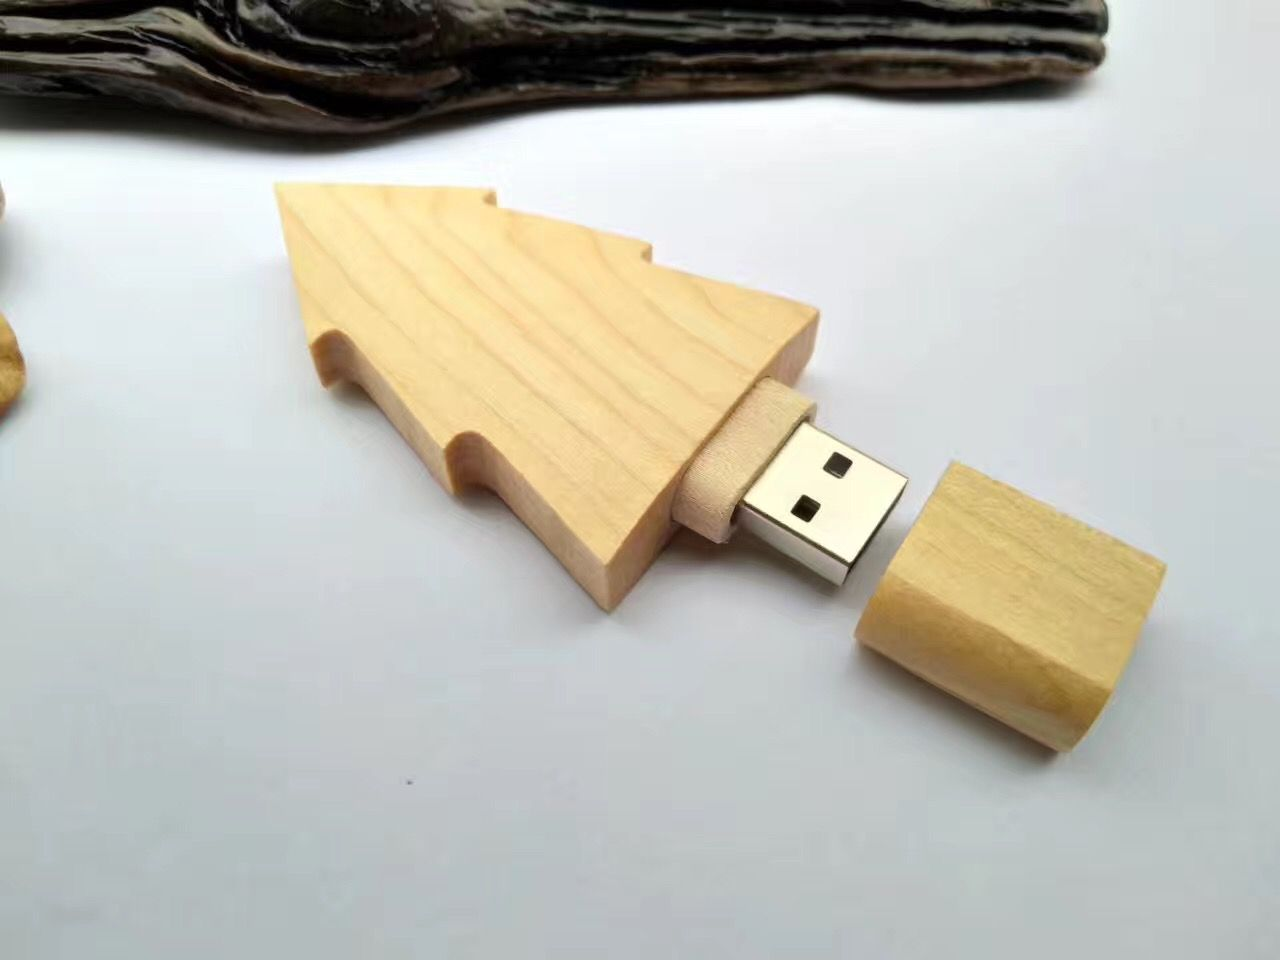 Wood Tree Shape Usb Flash Memory Sticks 1gb 2gb 4gb 8gb Storage Capacity Usb Custom Usb Flash Memory